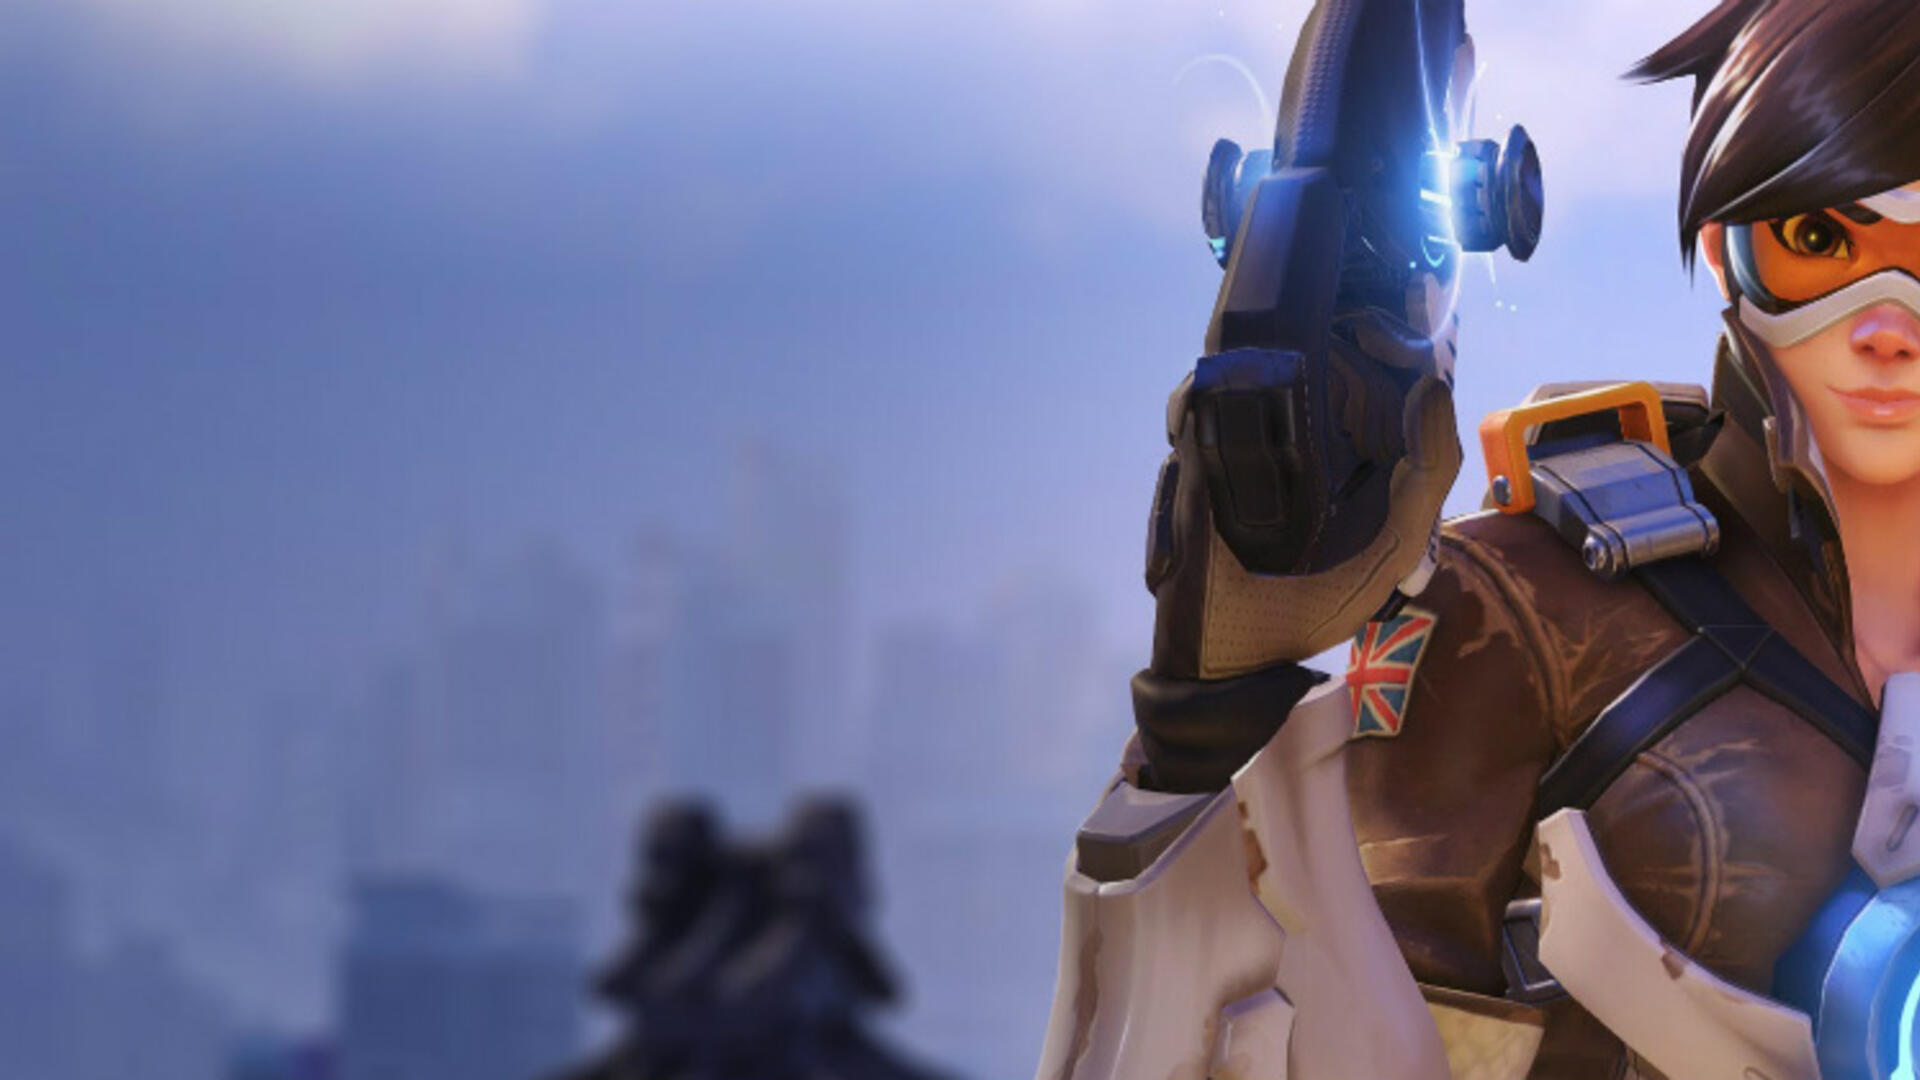 Overwatch: Tracer Pose Removed Due To Fan Feedback, More